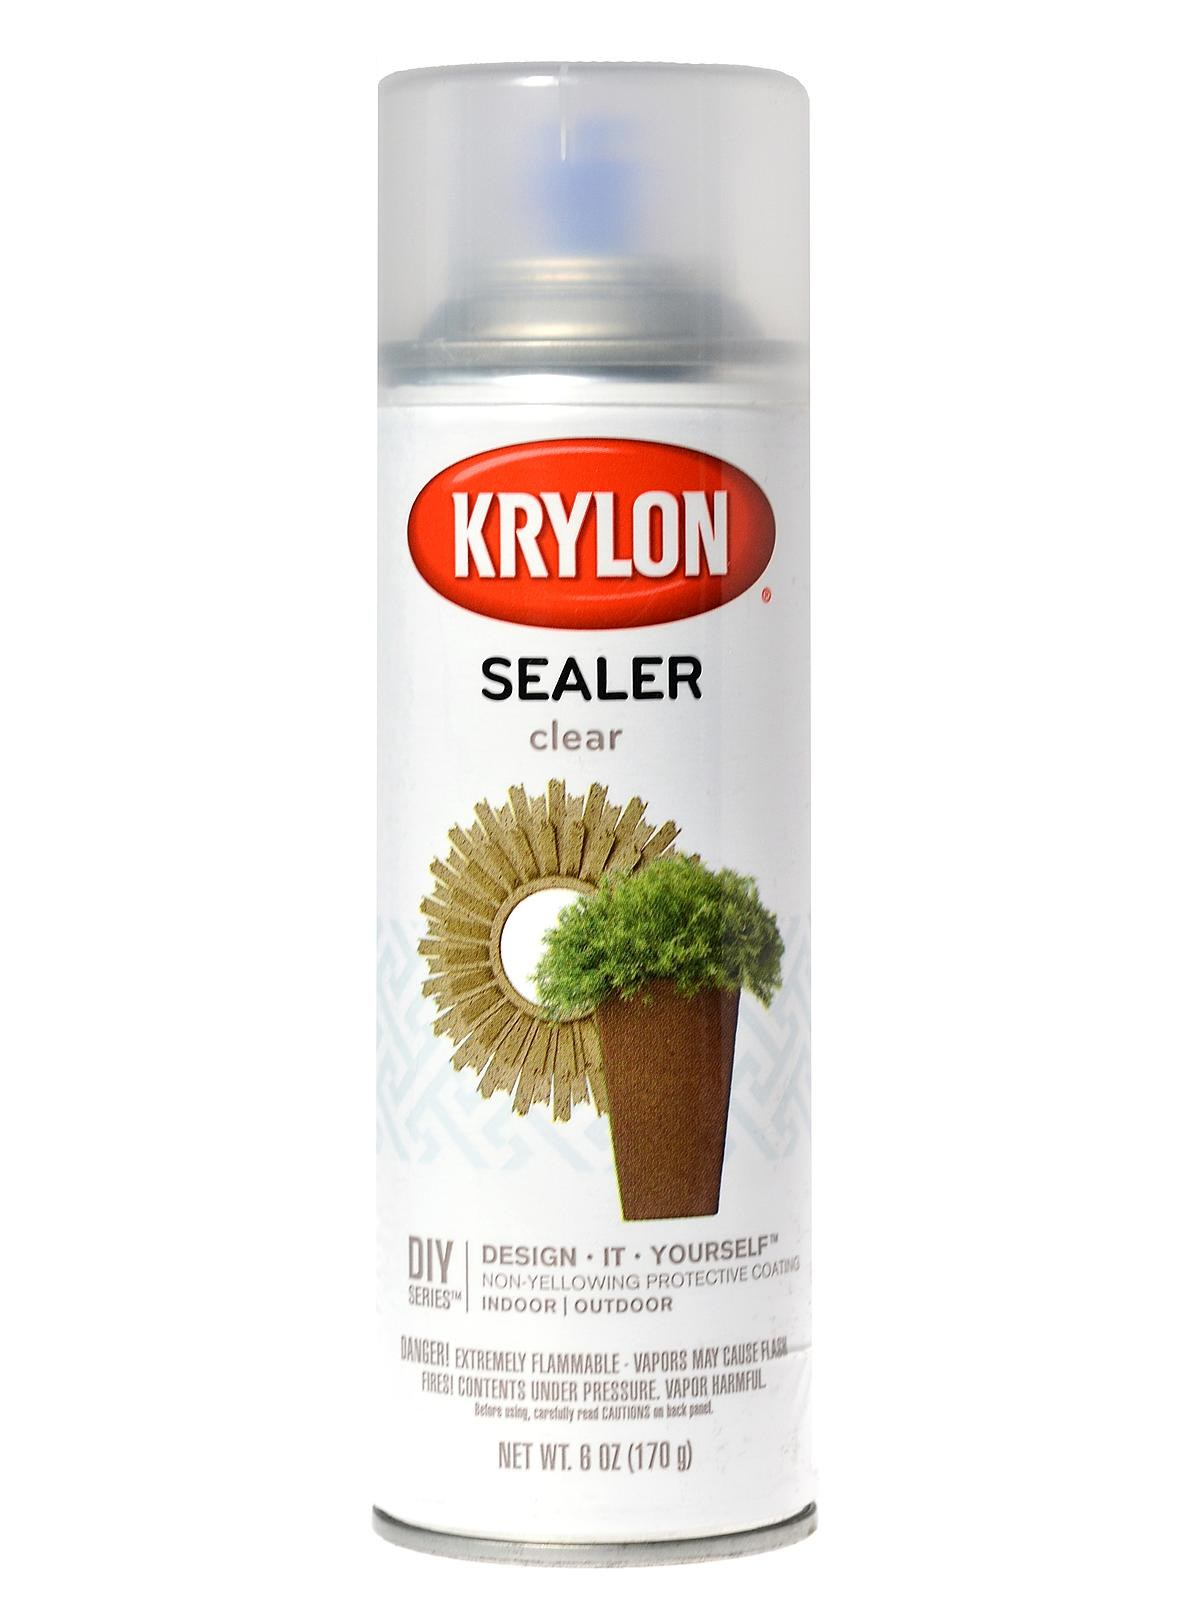 I'm looking for a clear brush on sealant?